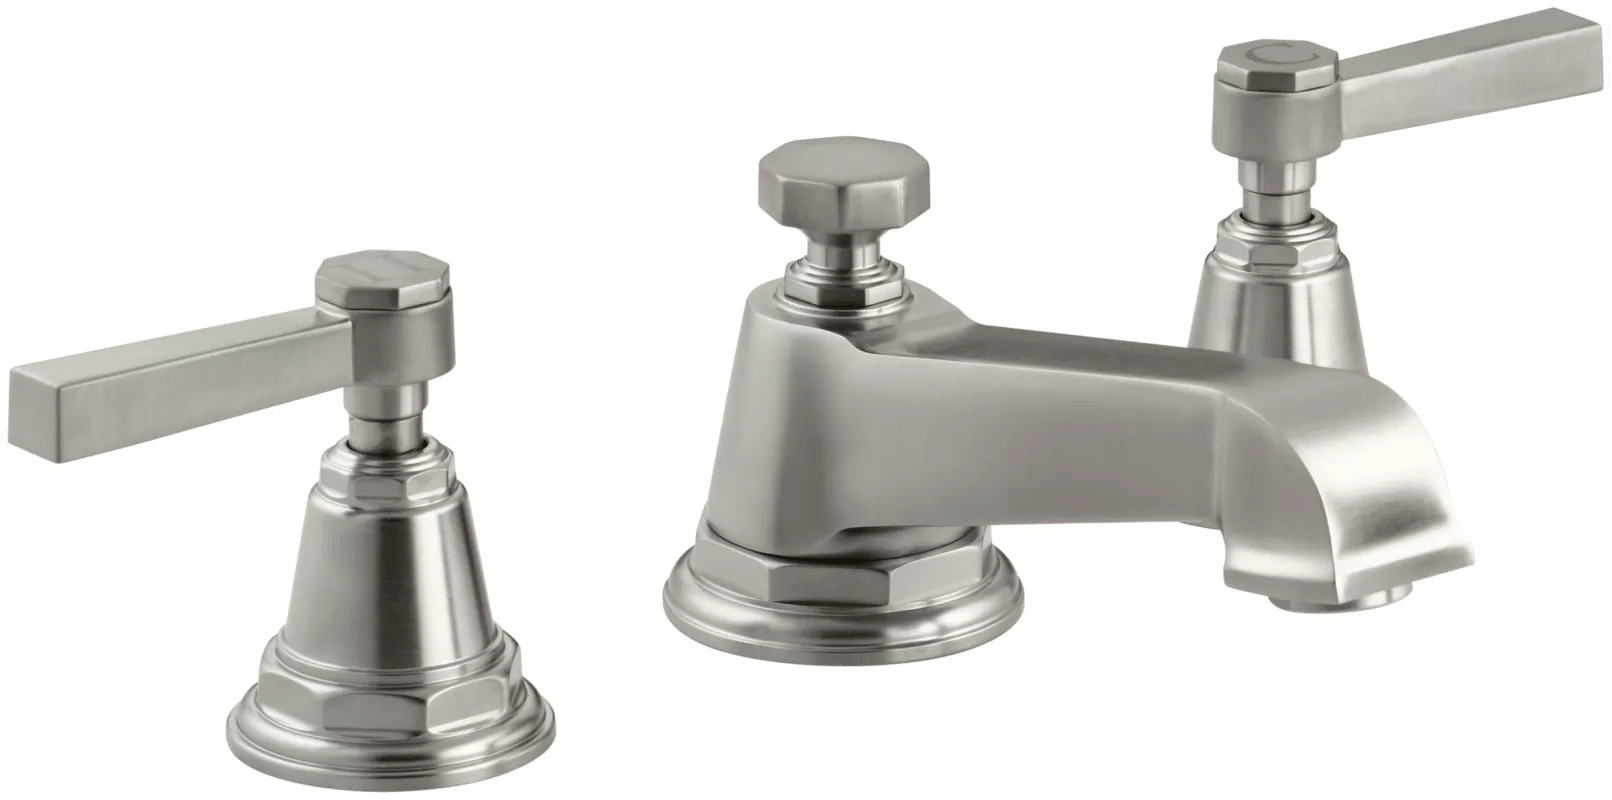 Brushed Nickel Bathroom Faucets Clearance Faucet K 13132 4a Bn In Brushed Nickel By Kohler